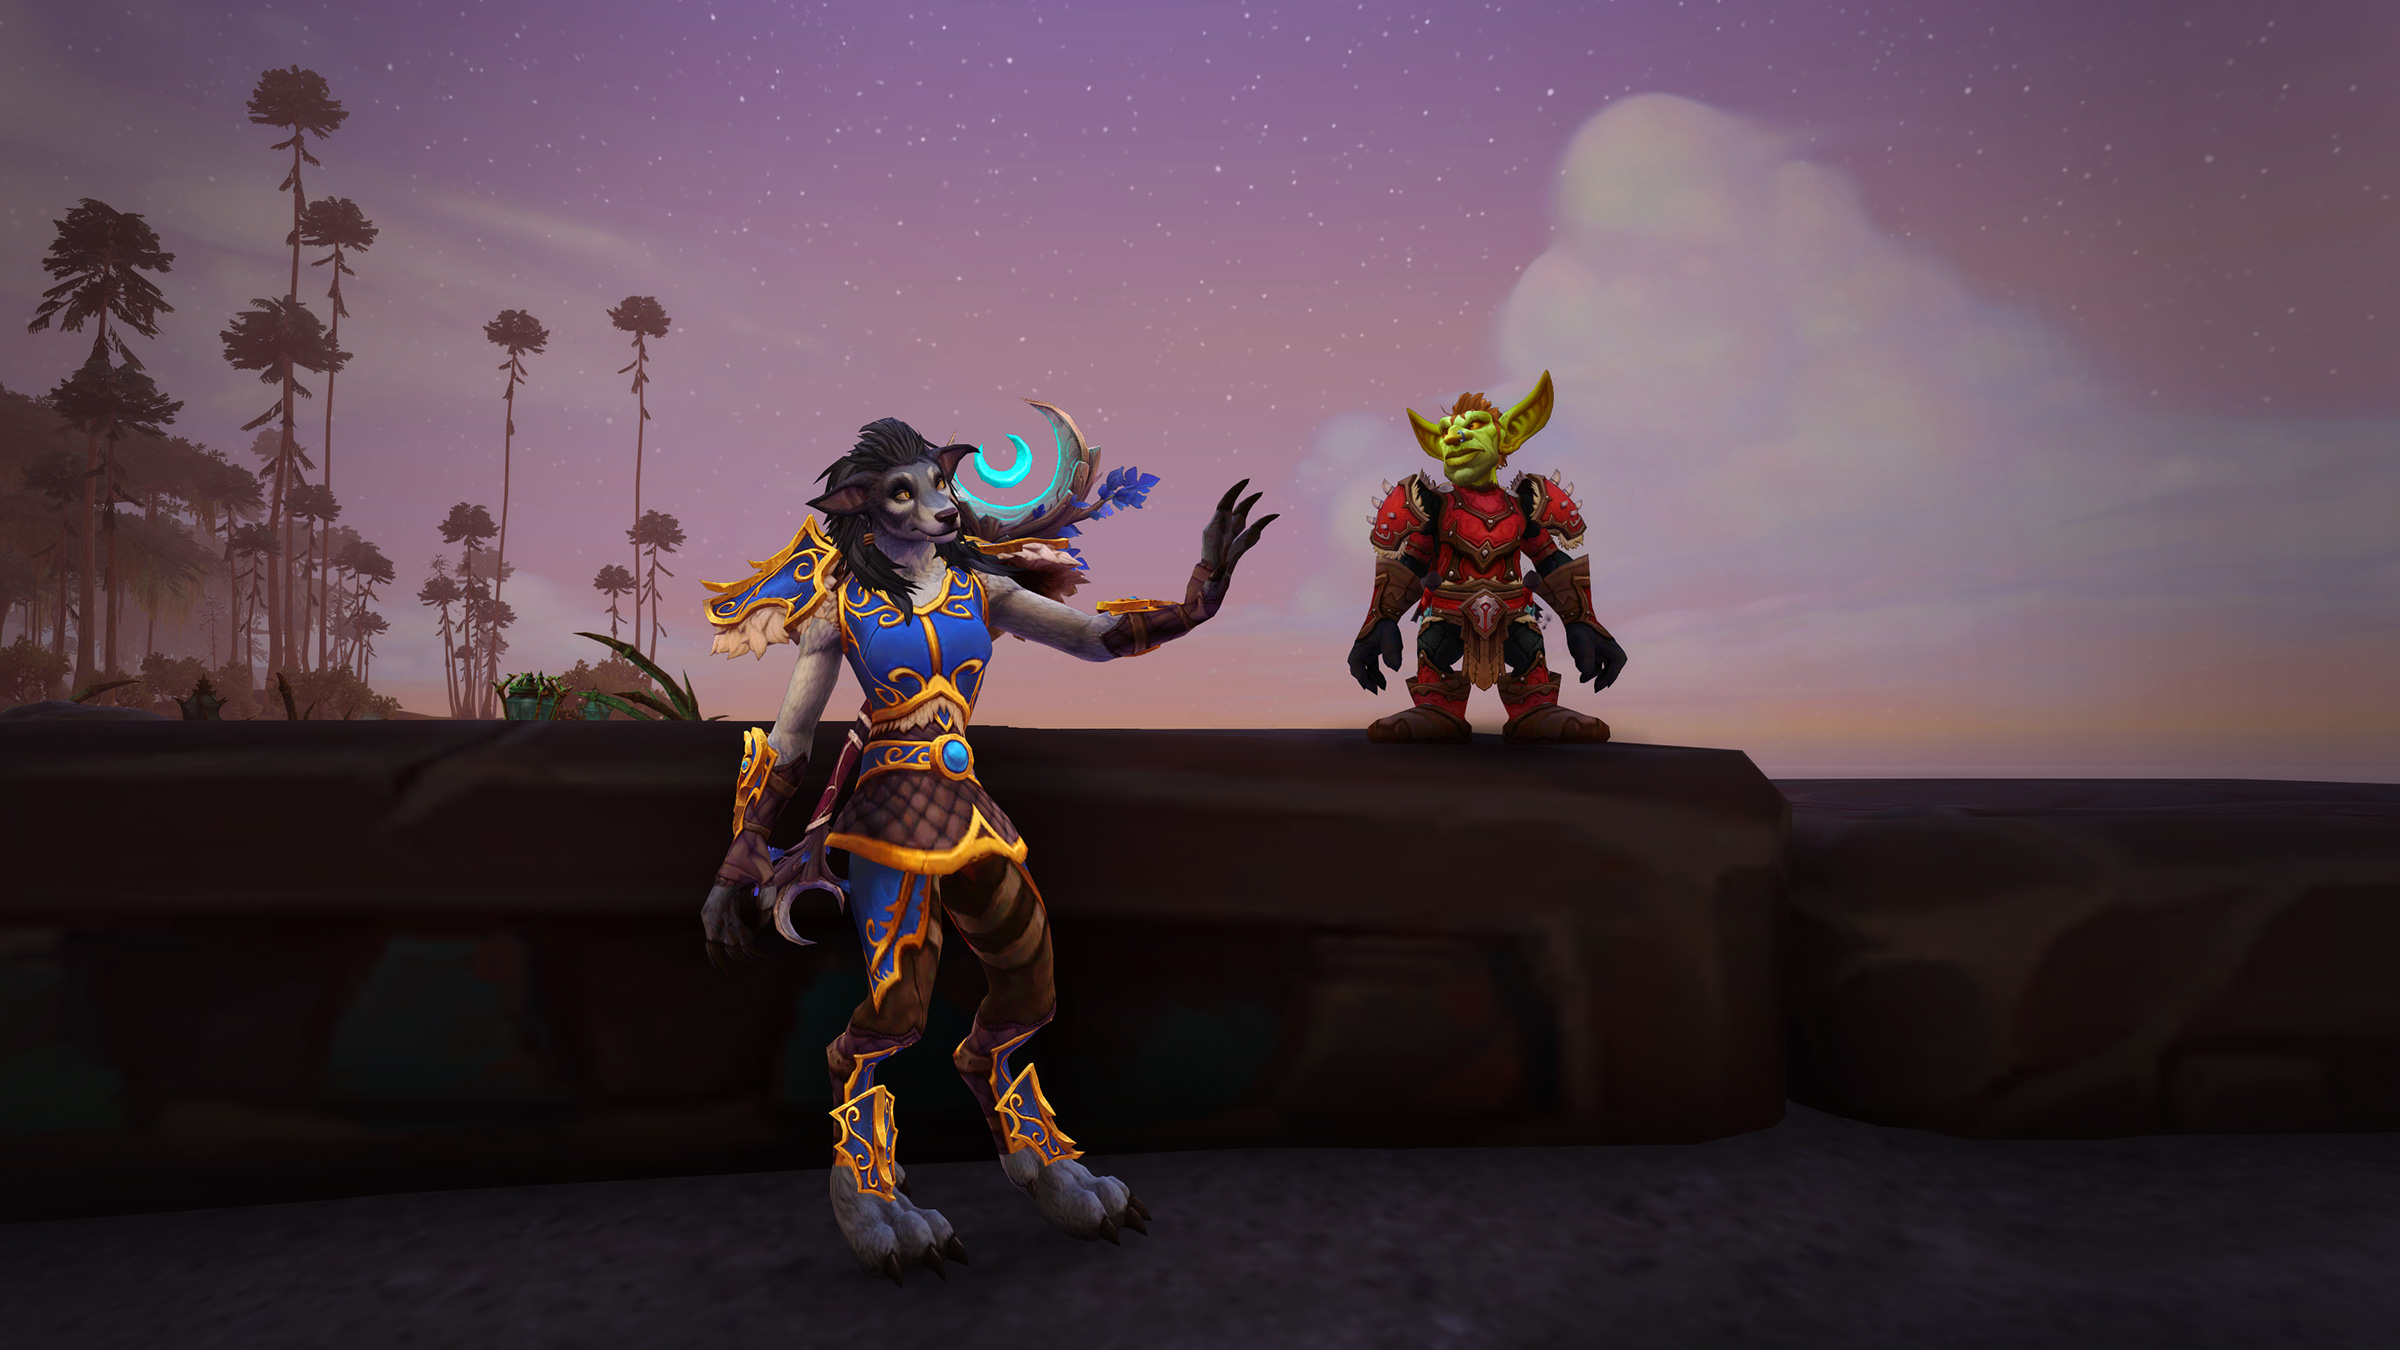 Altoholic Addon get ready for wow 8.2.5 with these addons - gamespace